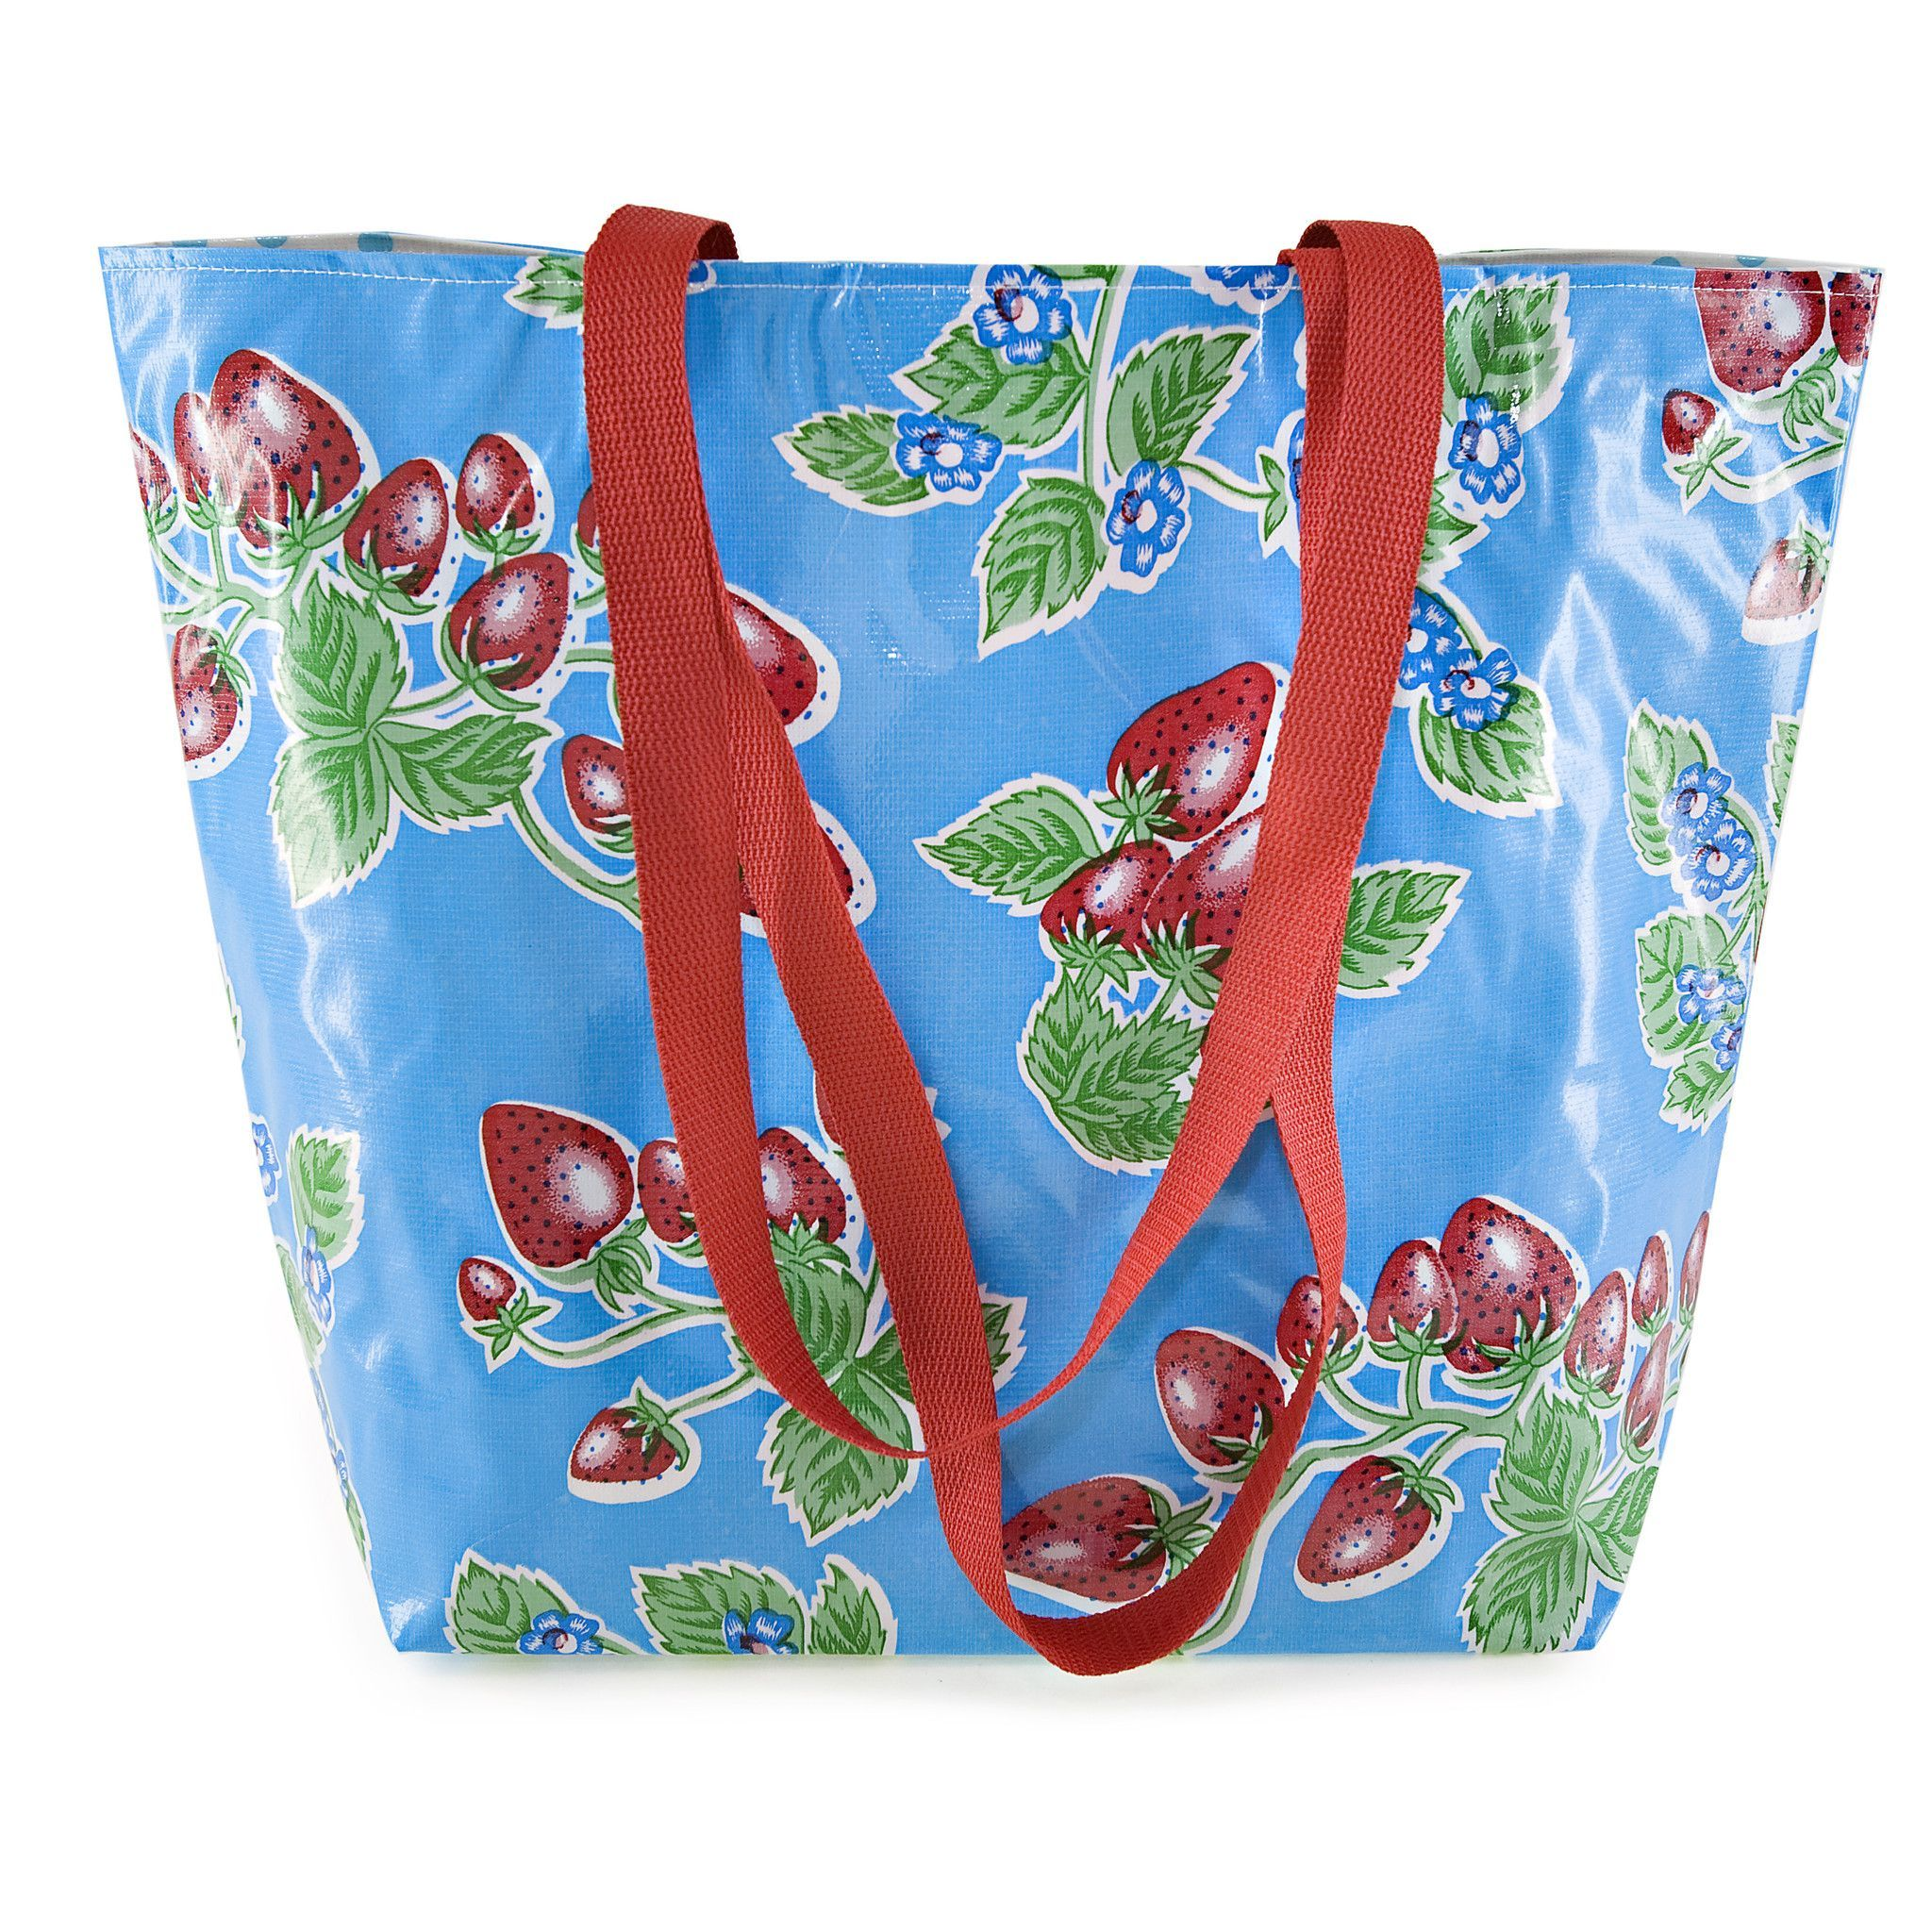 Reversible Oilcloth Totebag - Blue Strawberry